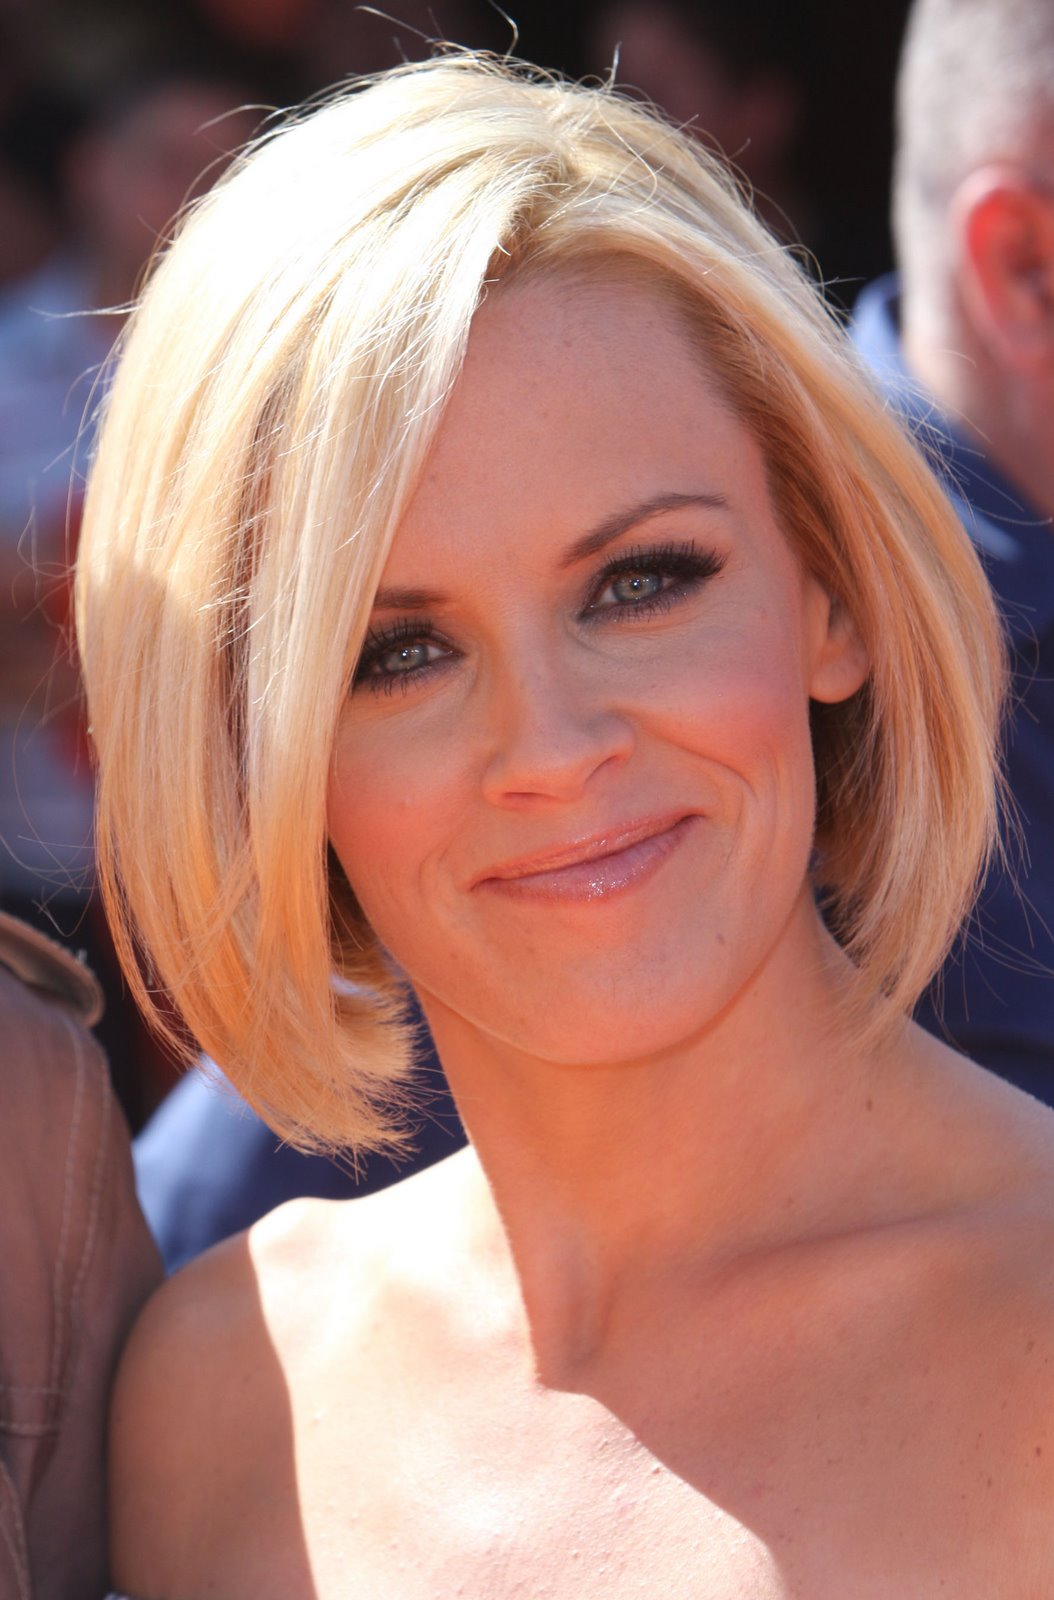 ... Bob haircut will make your face look rounded which will make you look